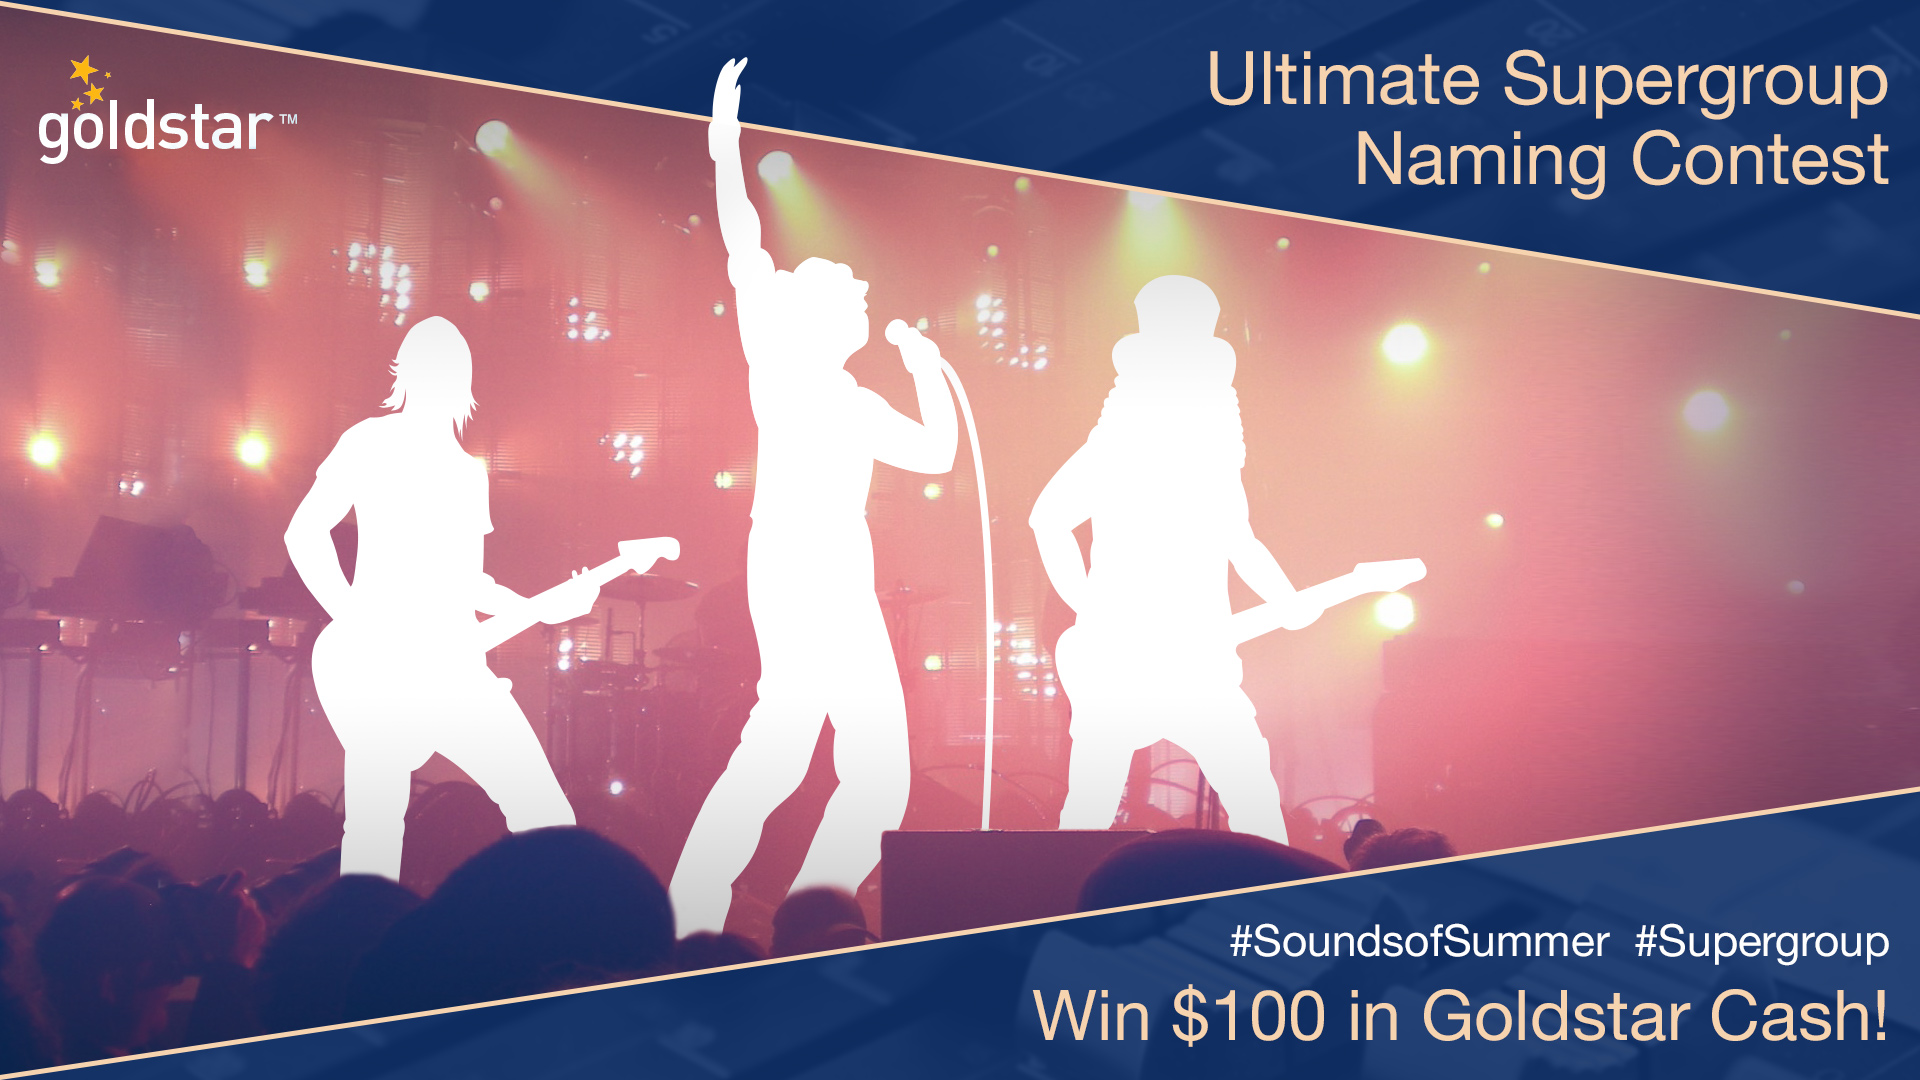 Goldstar Supergroup Naming Contest